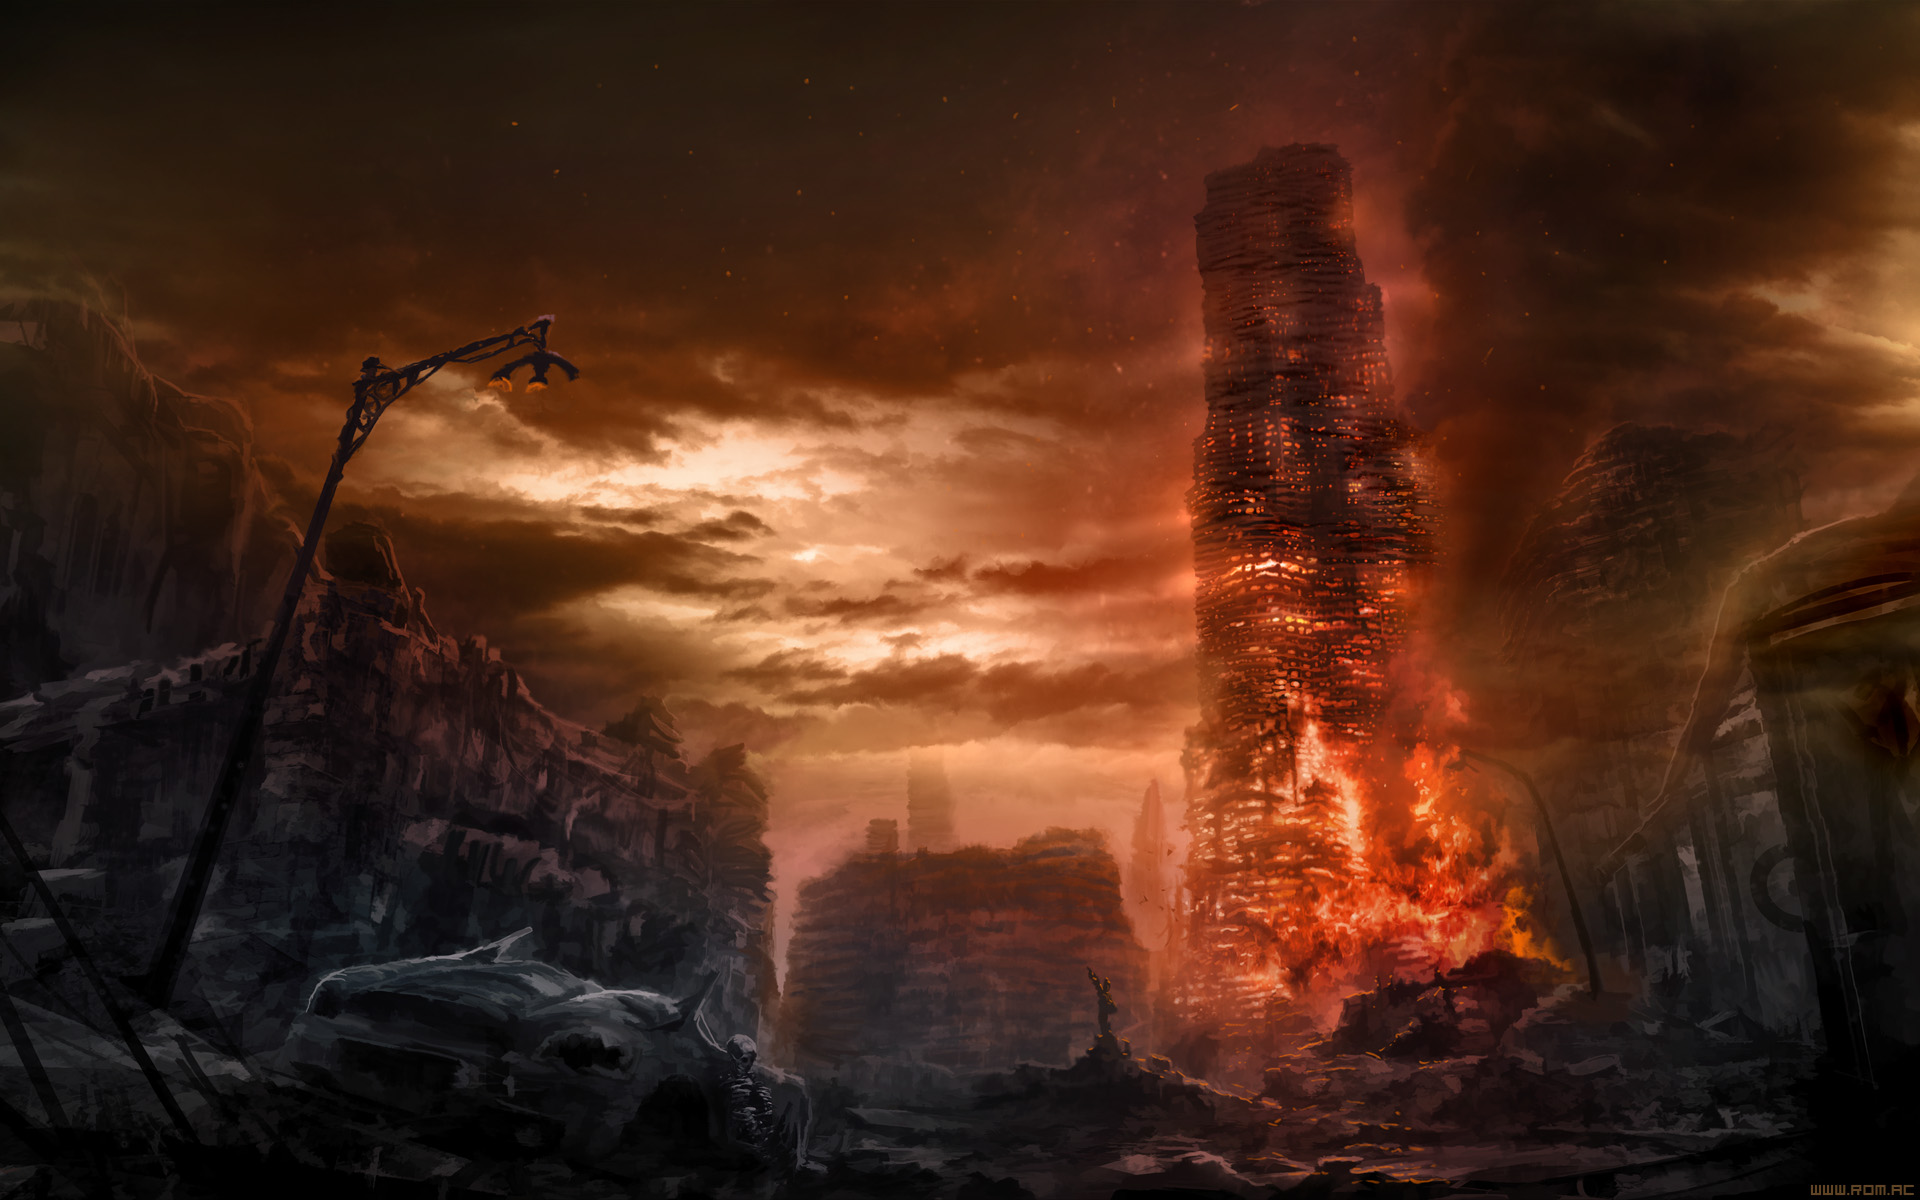 Romantically Apocalyptic Drawing Apocalypse Fire dark wallpaper 1920x1200